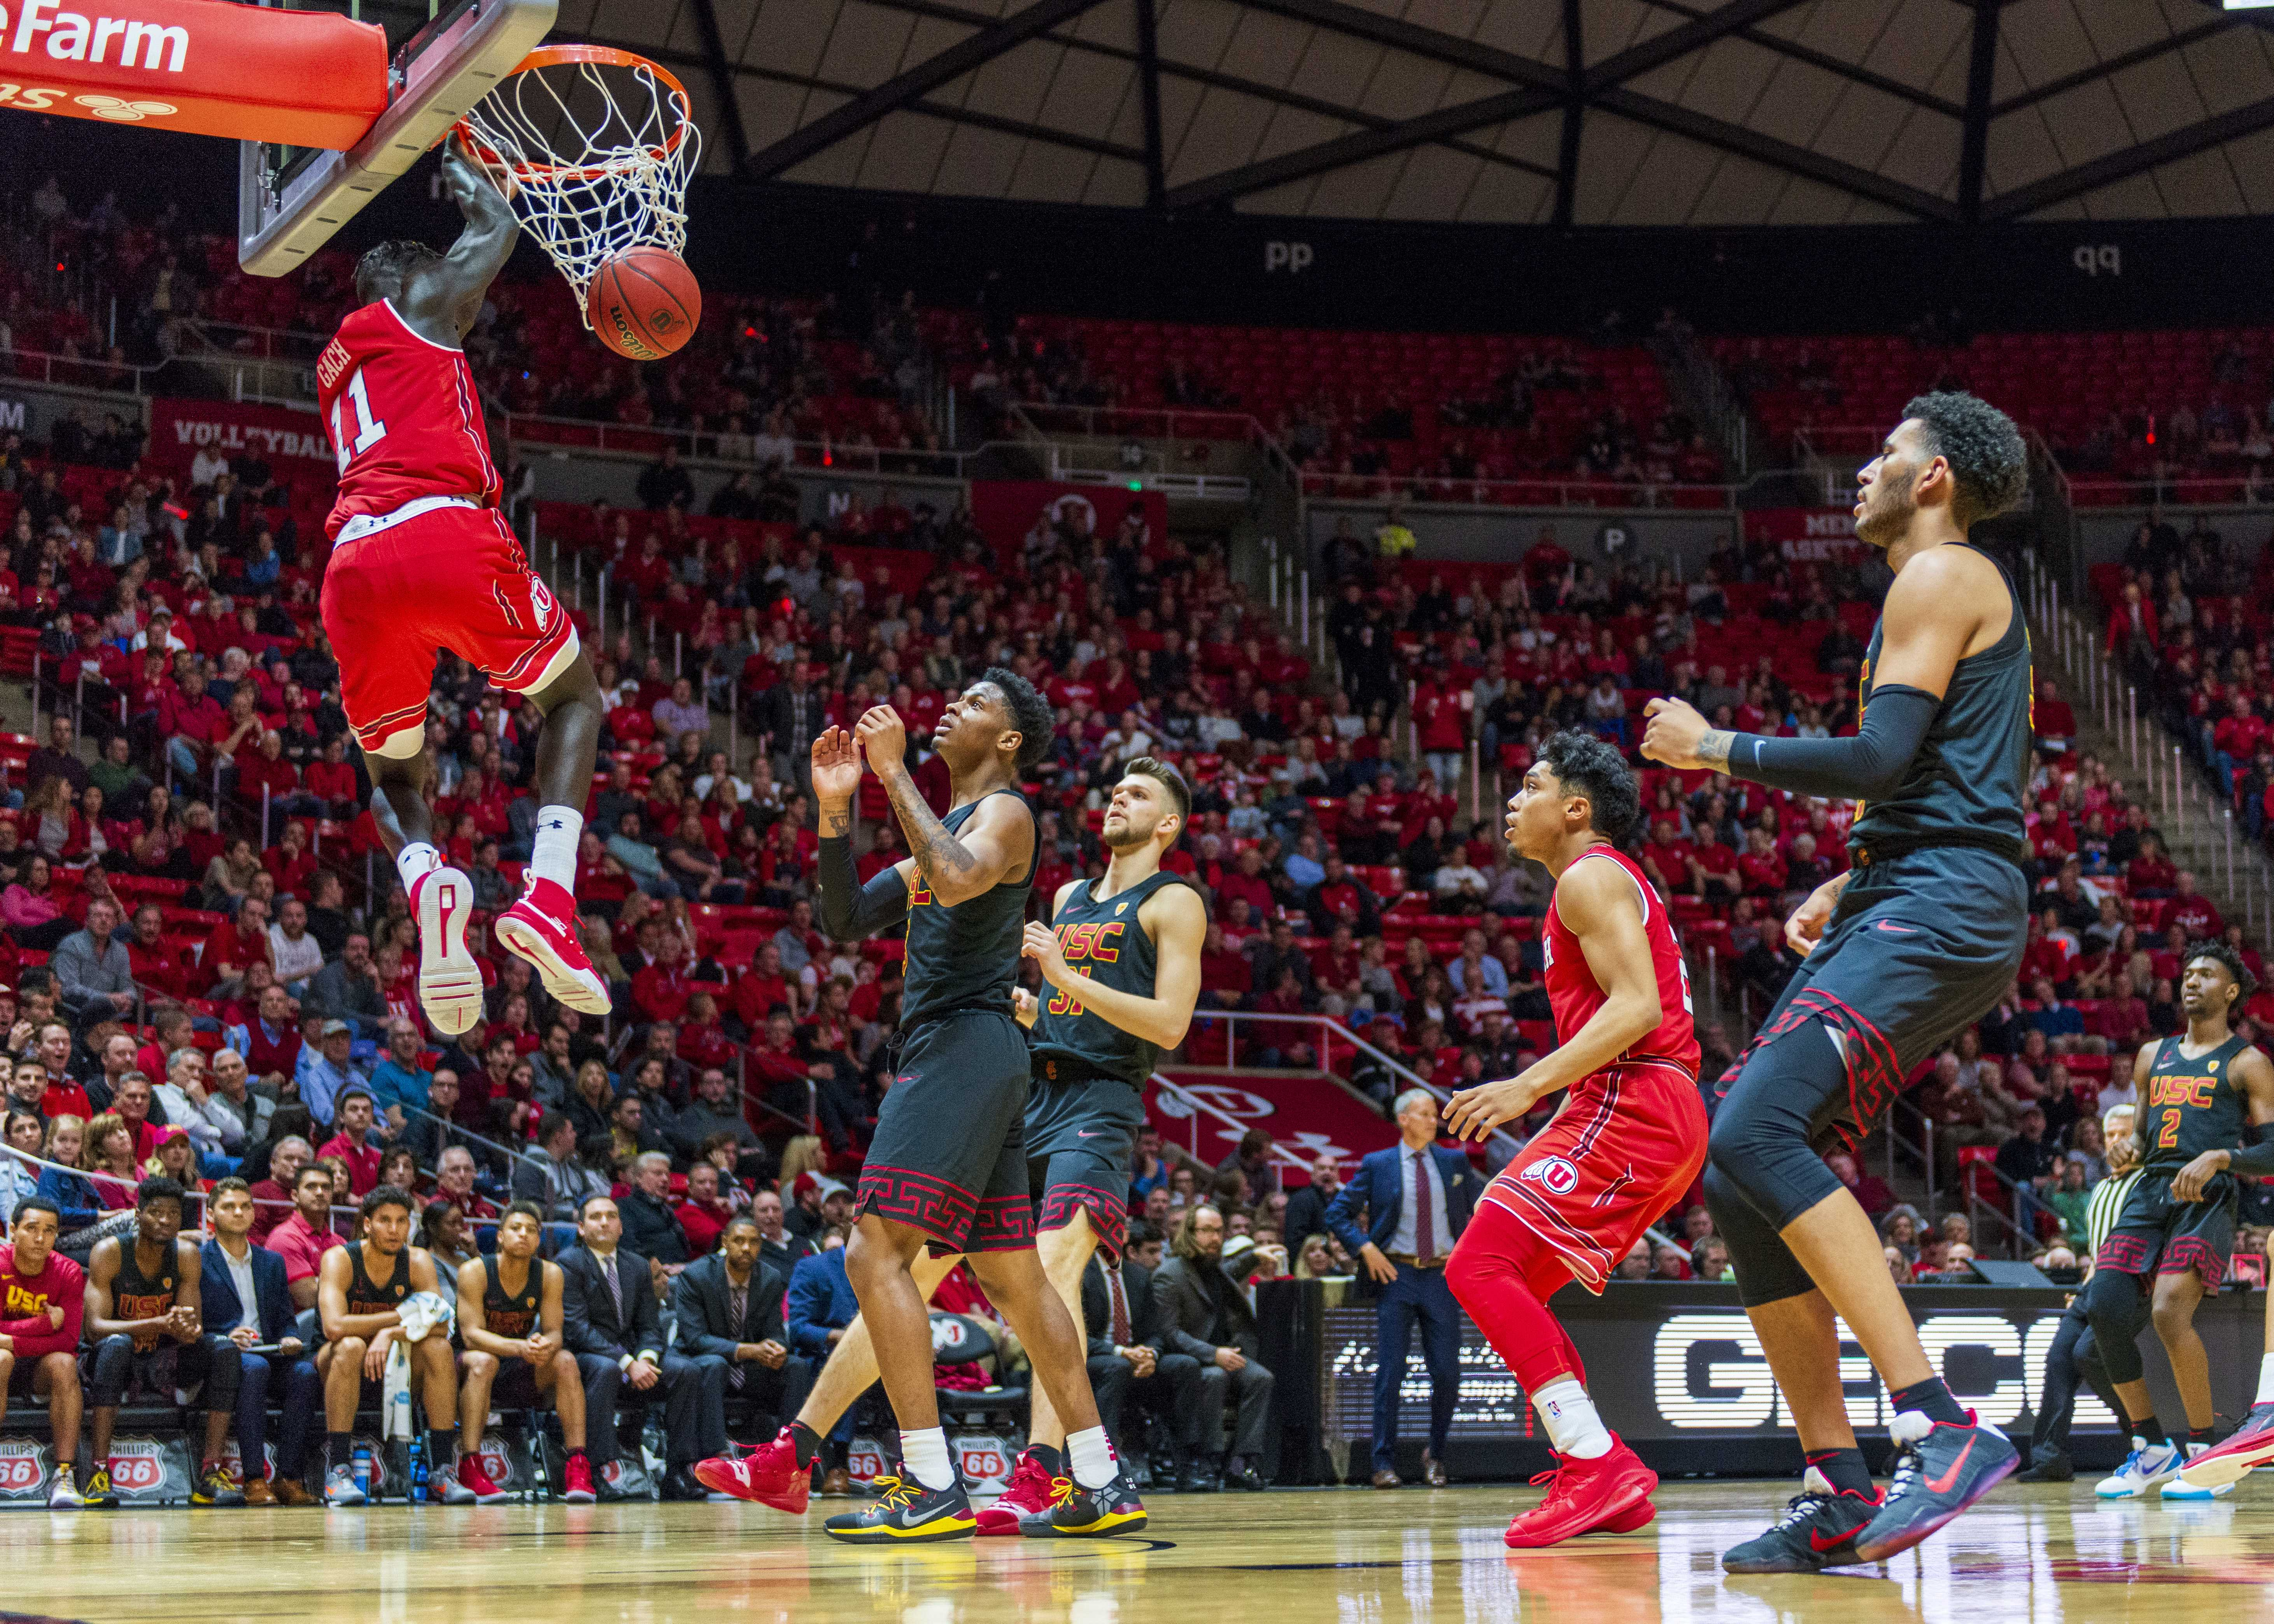 University of Utah freshman forward Both Gach (11) makes a slam dunk during an NCAA Basketball game vs. the USC Trojans at the Jon M. Huntsman Center in Salt Lake City, Utah on Thursday, March 7, 2019. (Photo by Kiffer Creveling | The Daily Utah Chronicle)